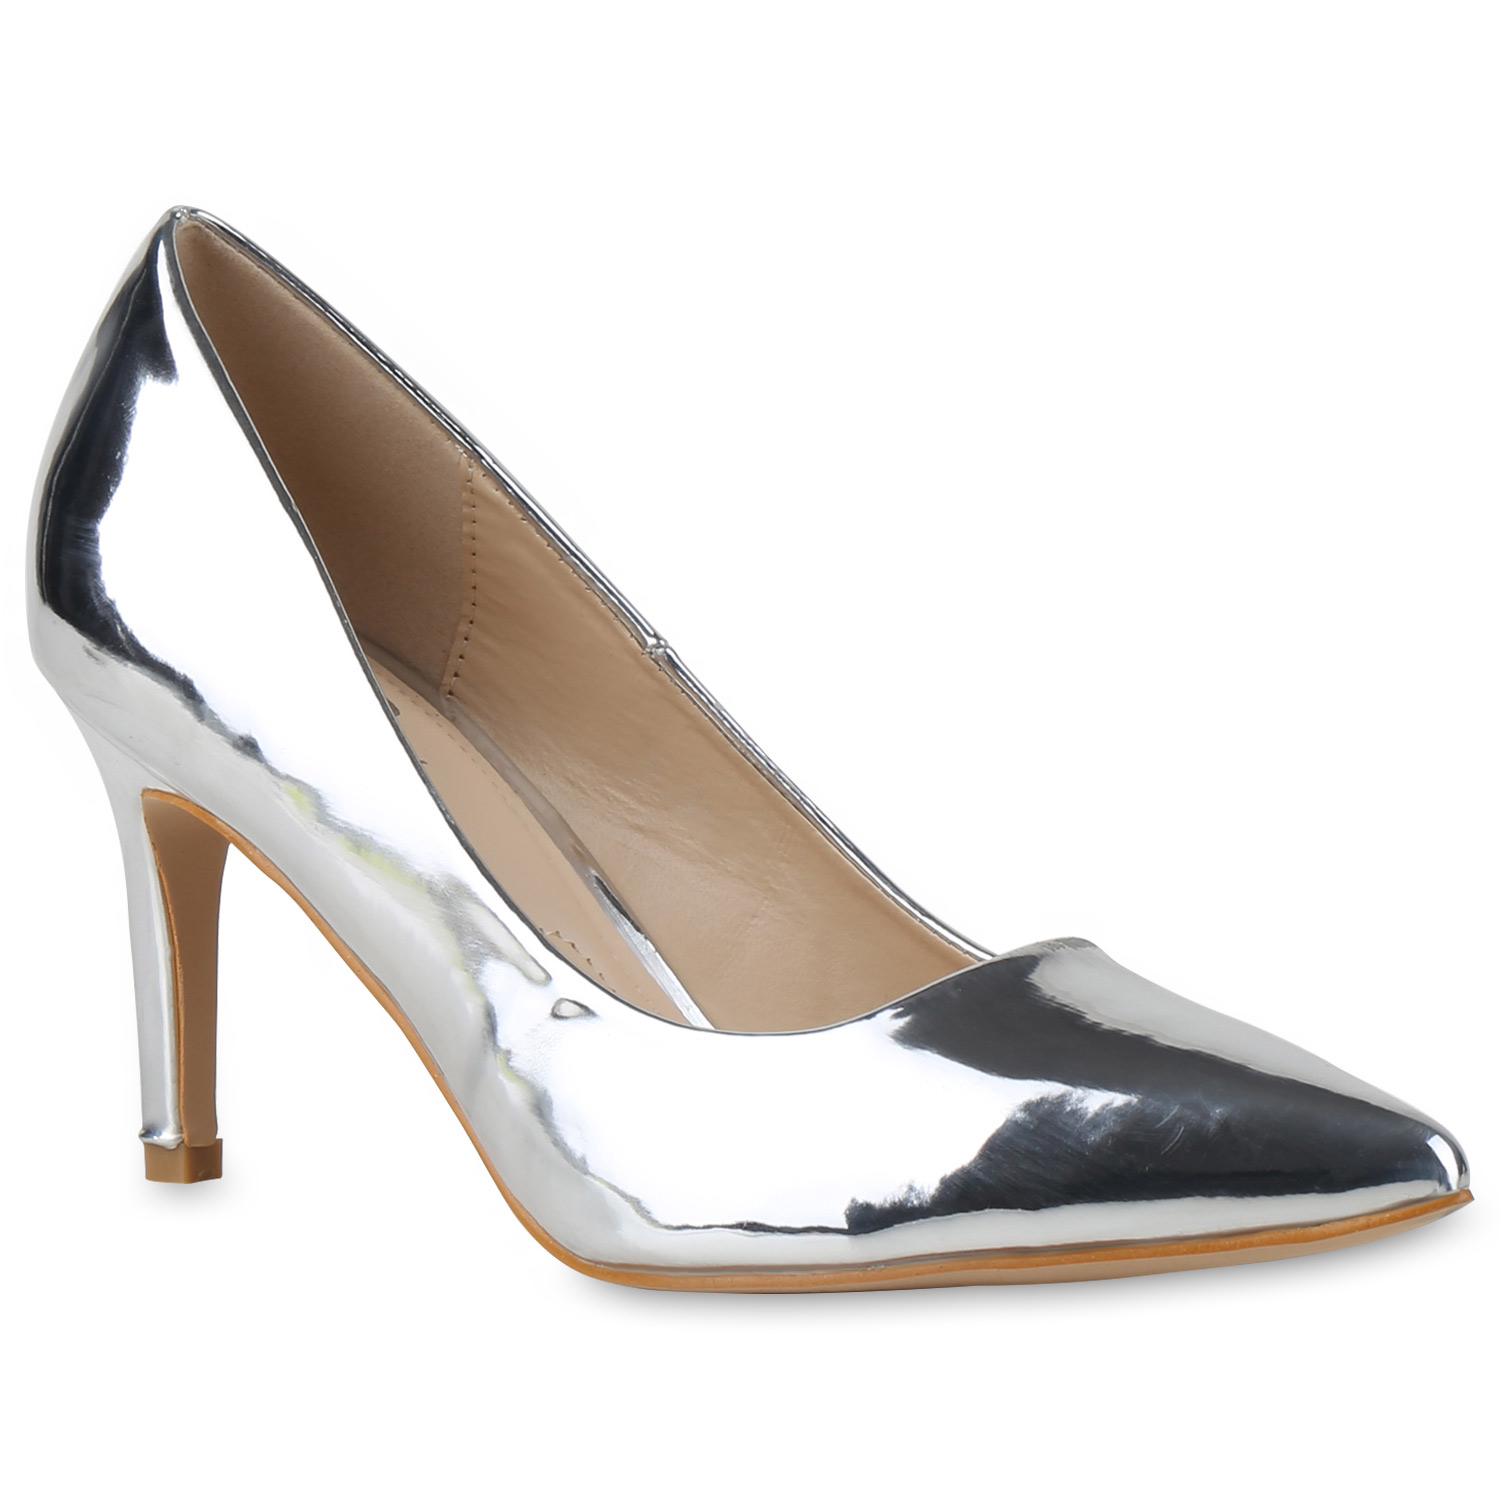 f78ef064ea5112 Damen Pumps in Silber (815223-526) - stiefelparadies.de